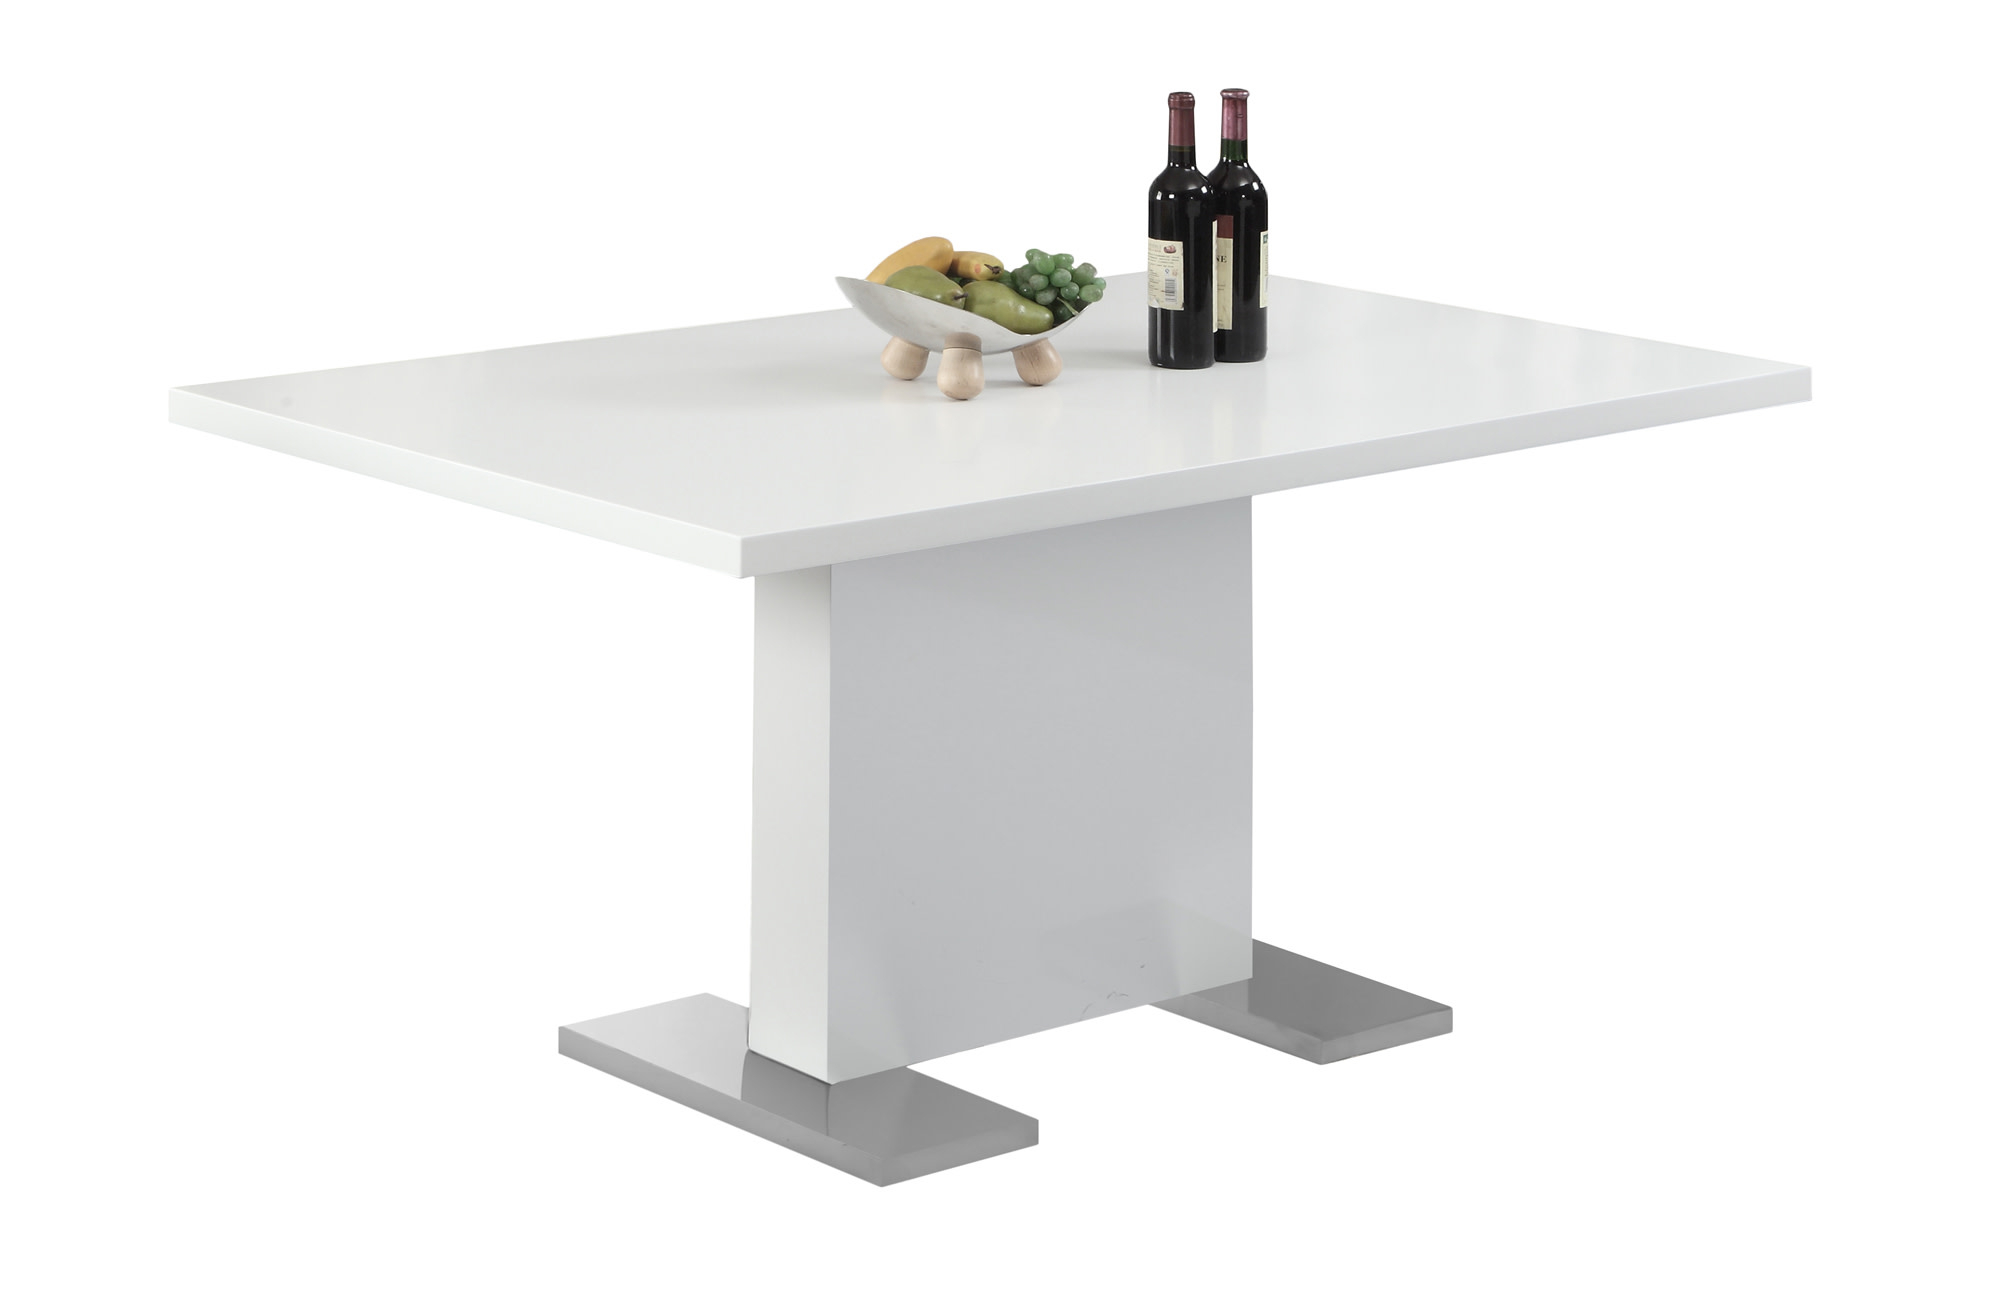 """Monarch Dining Table 35""""X 60"""" / High Glossy White Throughout Newest Baring 35'' Dining Tables (View 14 of 15)"""